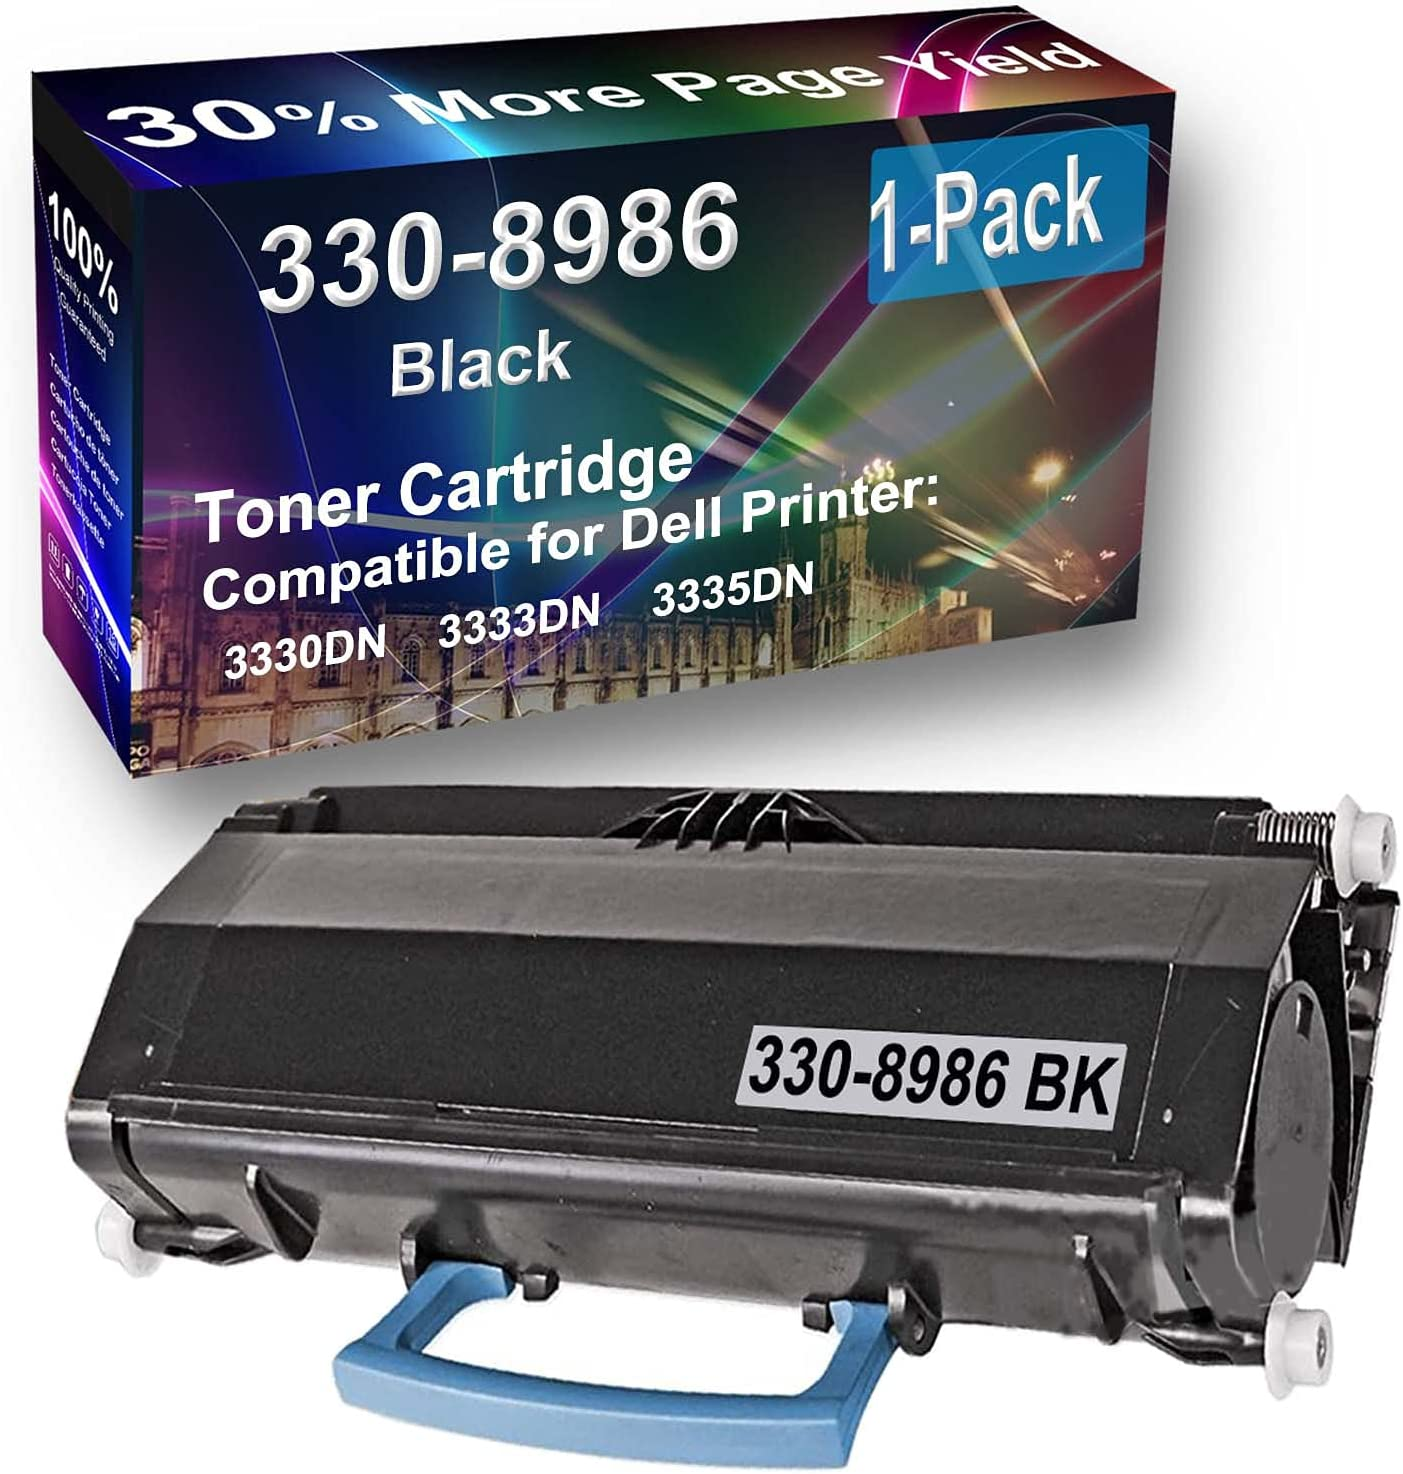 1-Pack Compatible High Capacity 3333DN Printer Toner Cartridge Replacement for Dell 330-8986 (R2PCF 9KH76 YY0JN) Toner Cartridge (Black)